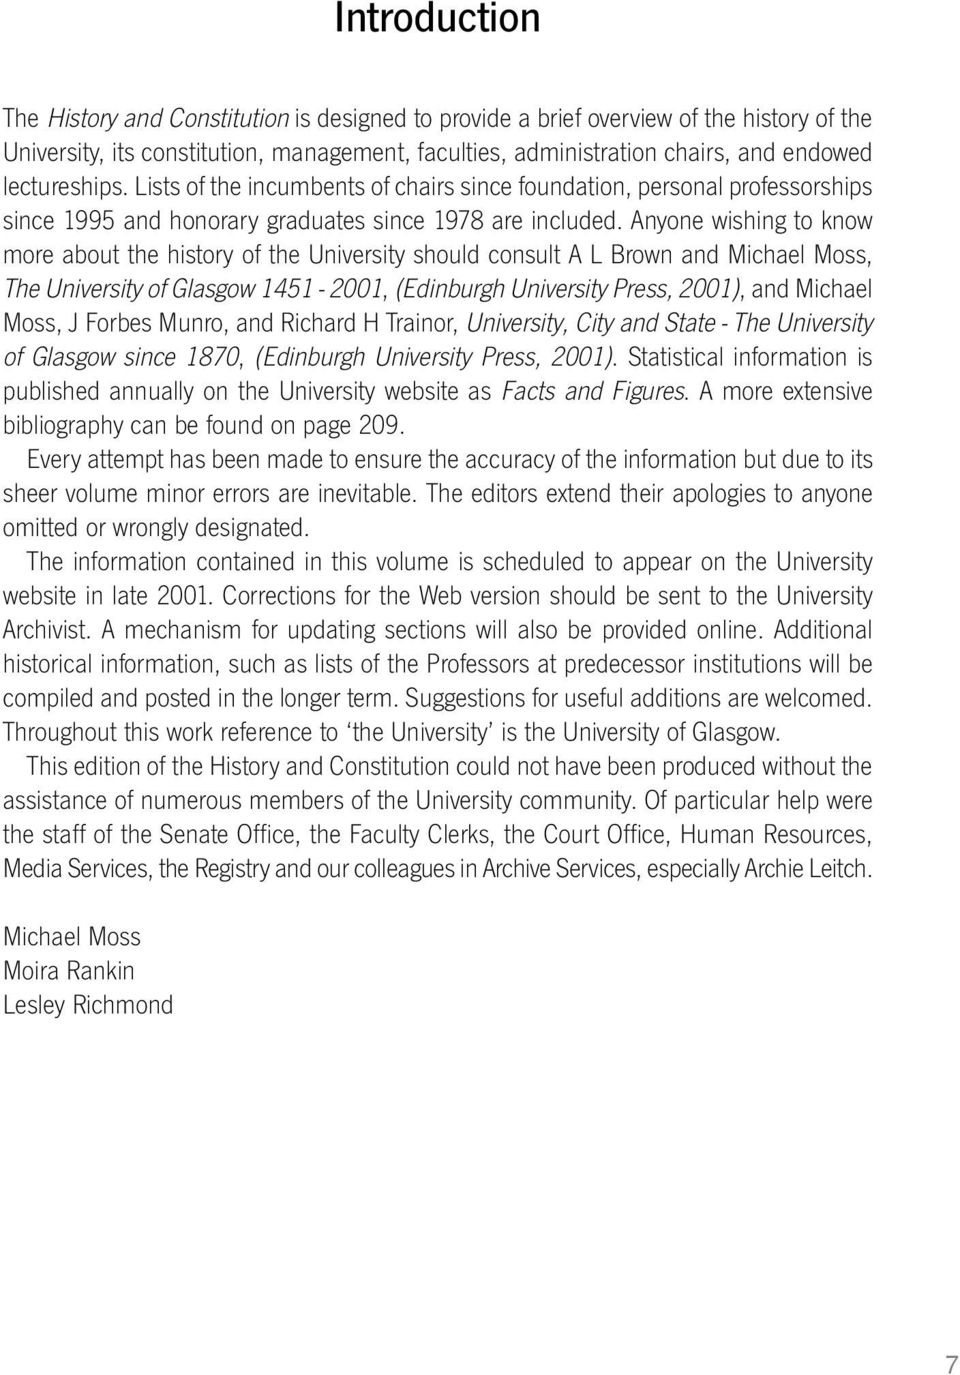 Anyone wishing to know more about the history of the University should consult A L Brown and Michael Moss, The University of Glasgow 1451-2001, (Edinburgh University Press, 2001), and Michael Moss, J